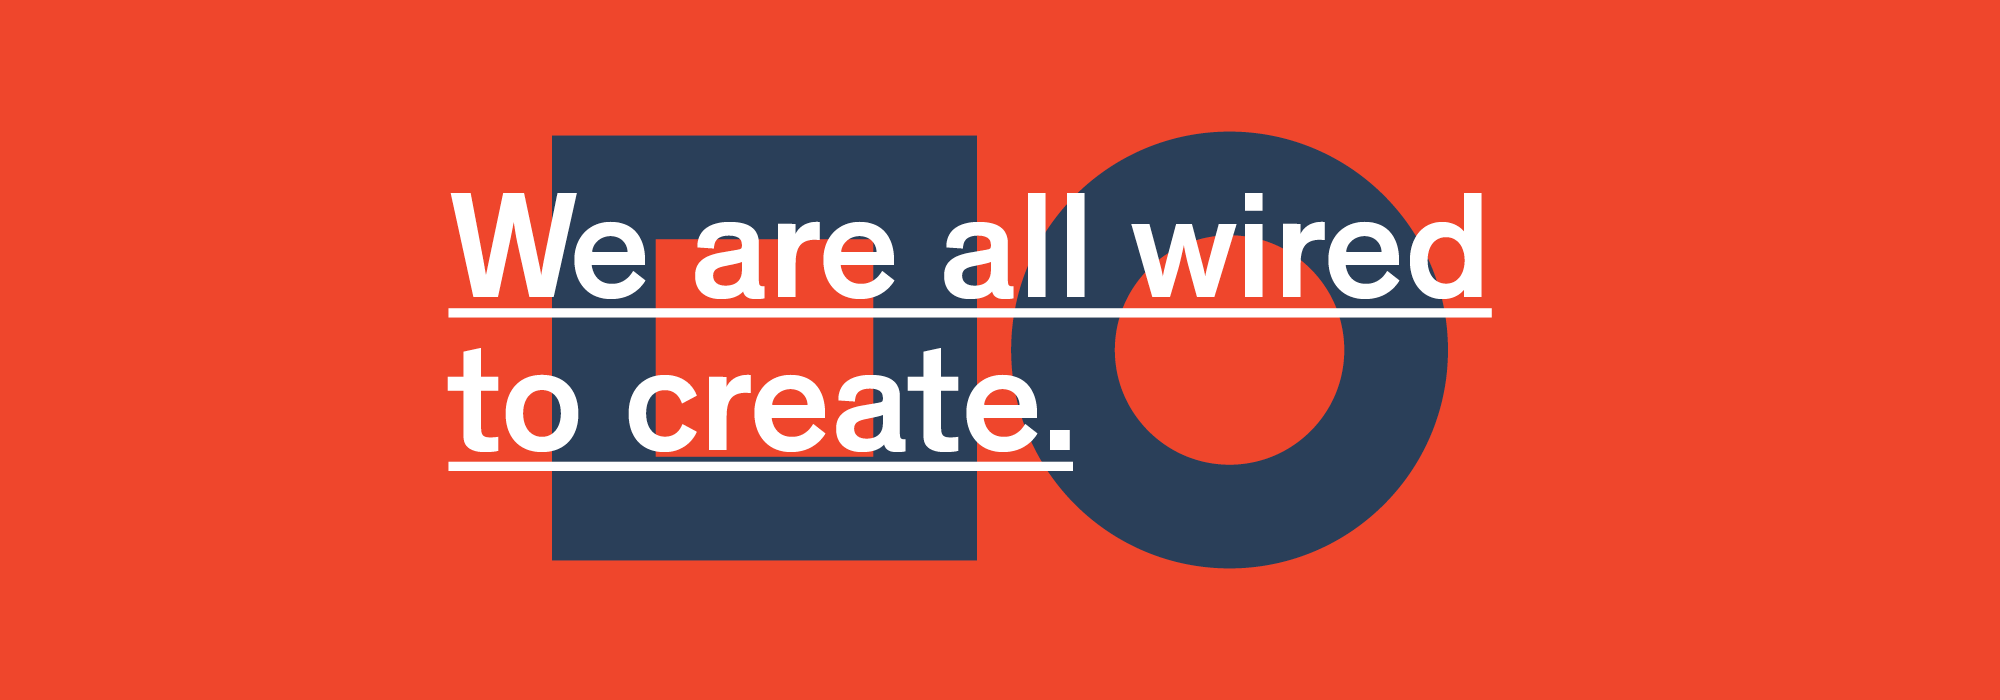 We are all wired to create.